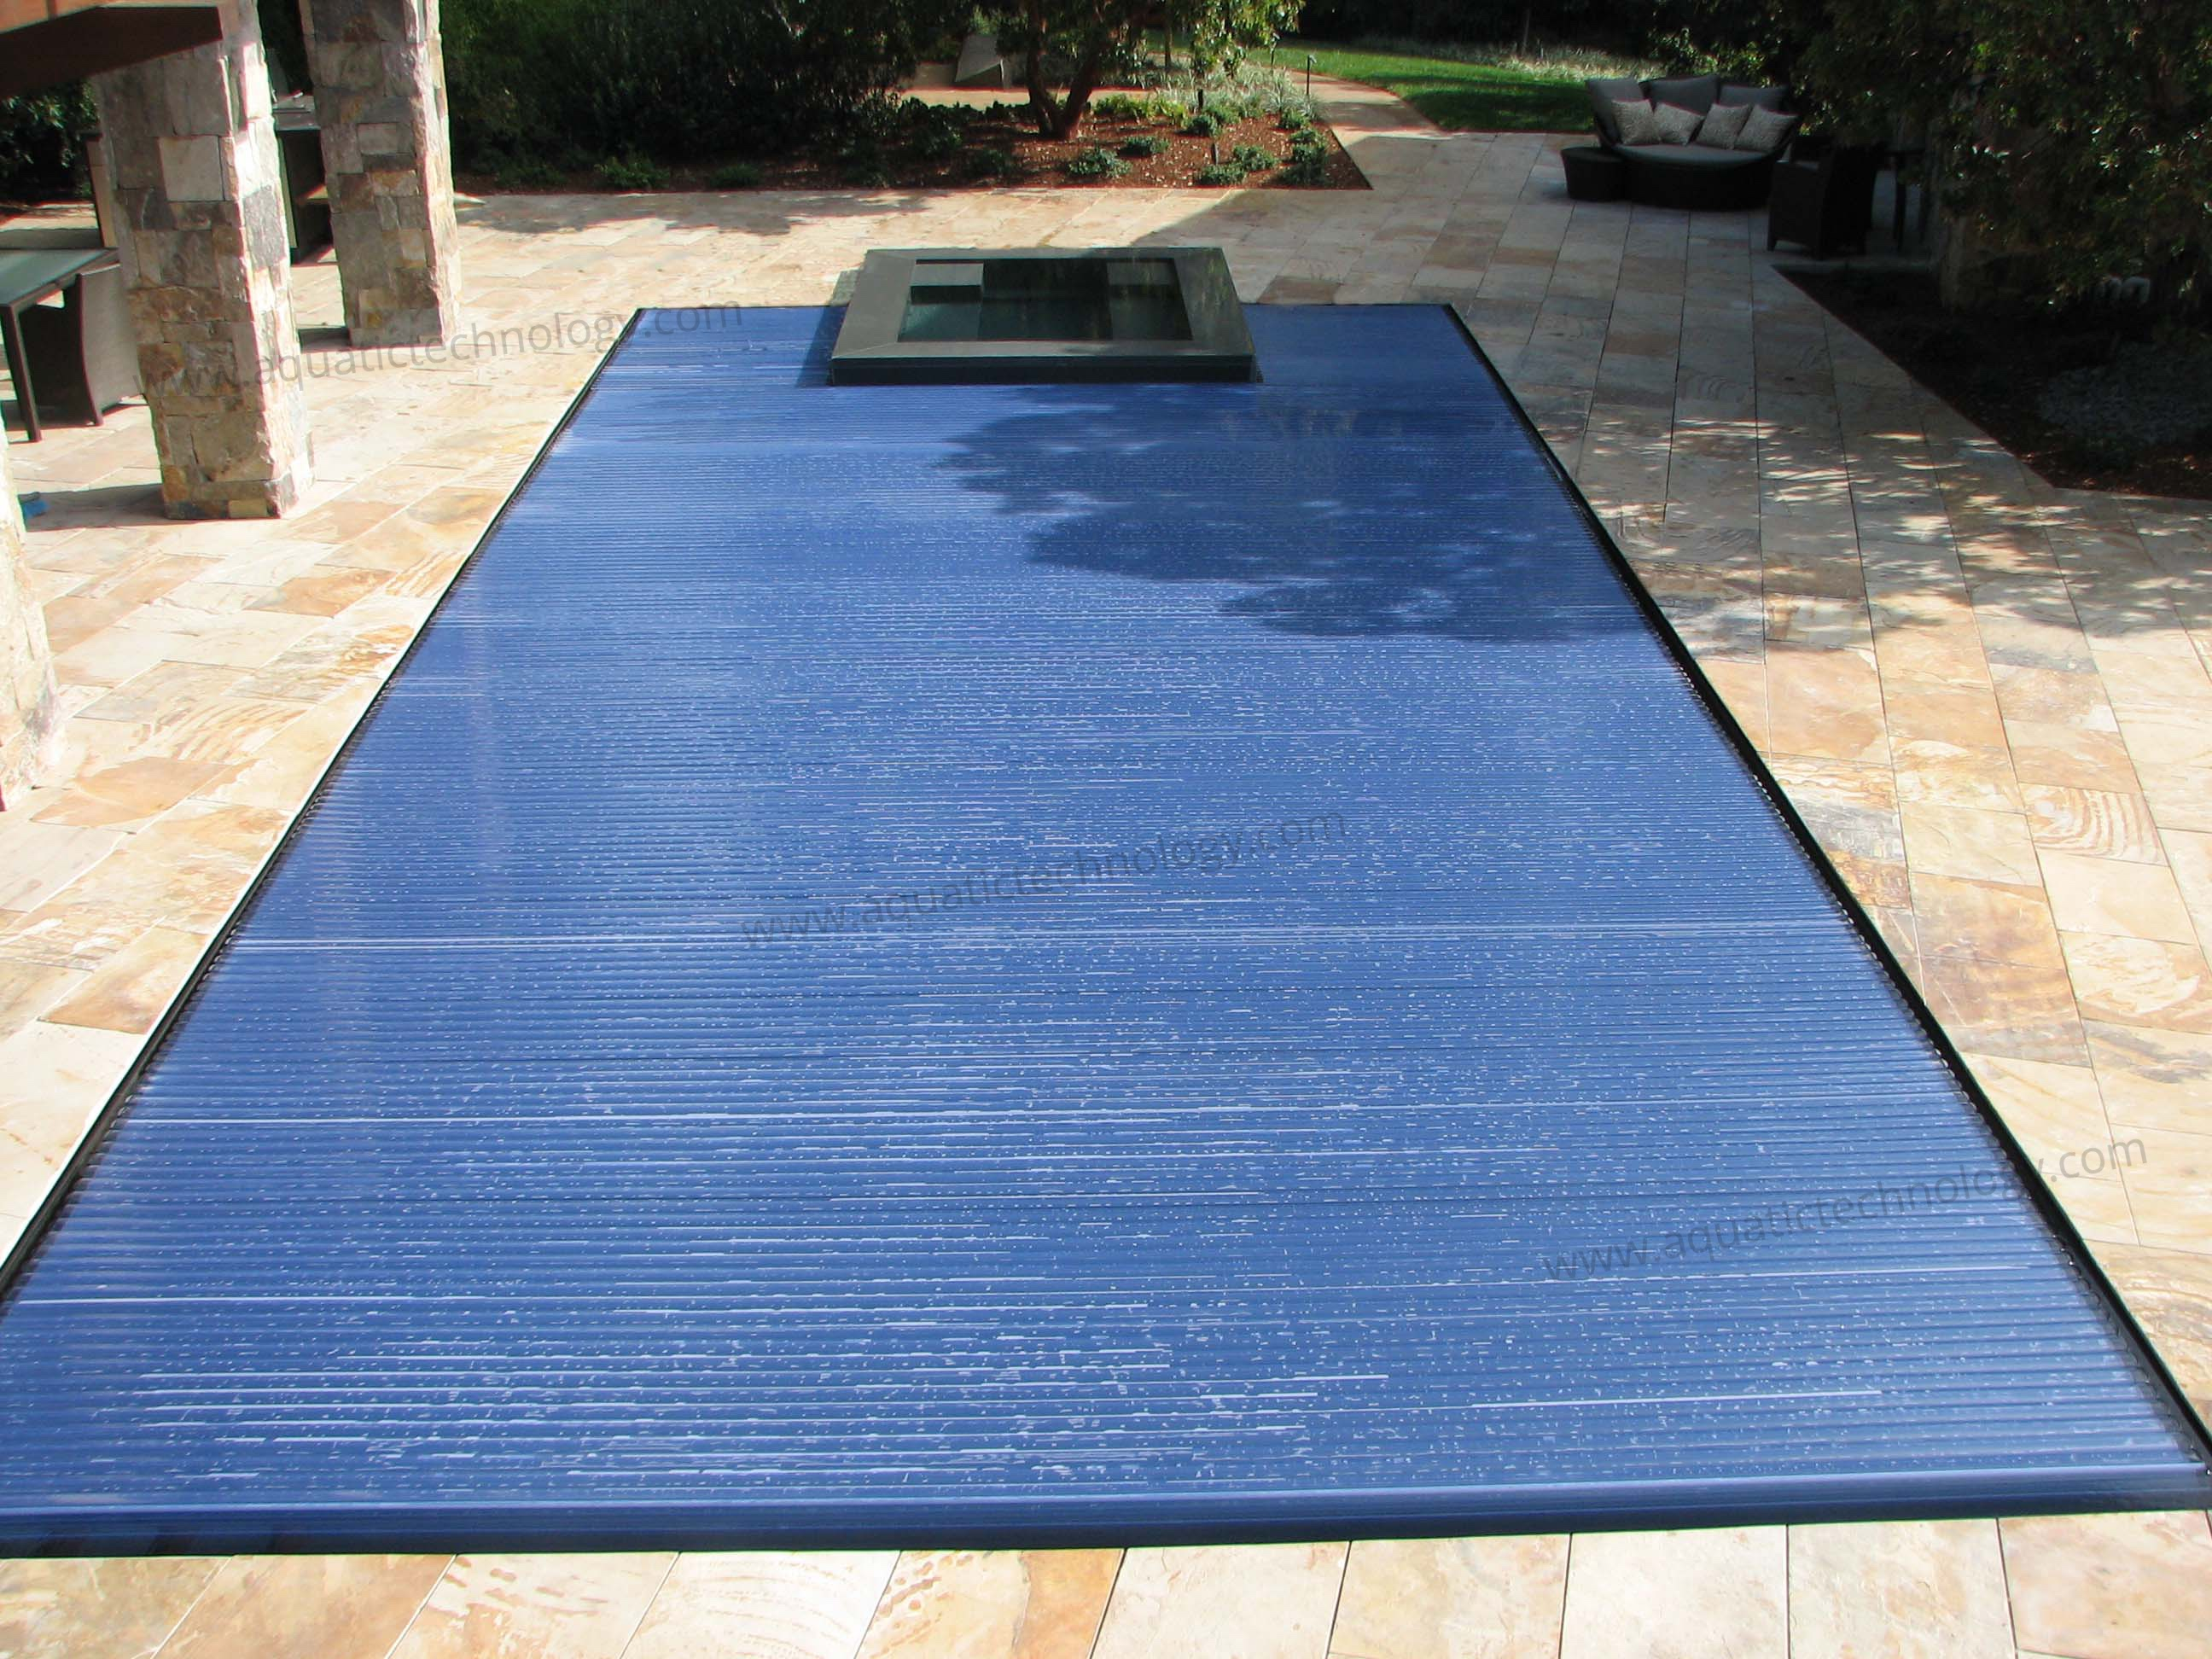 Aquamatic Hydrolux floating automatic pool cover